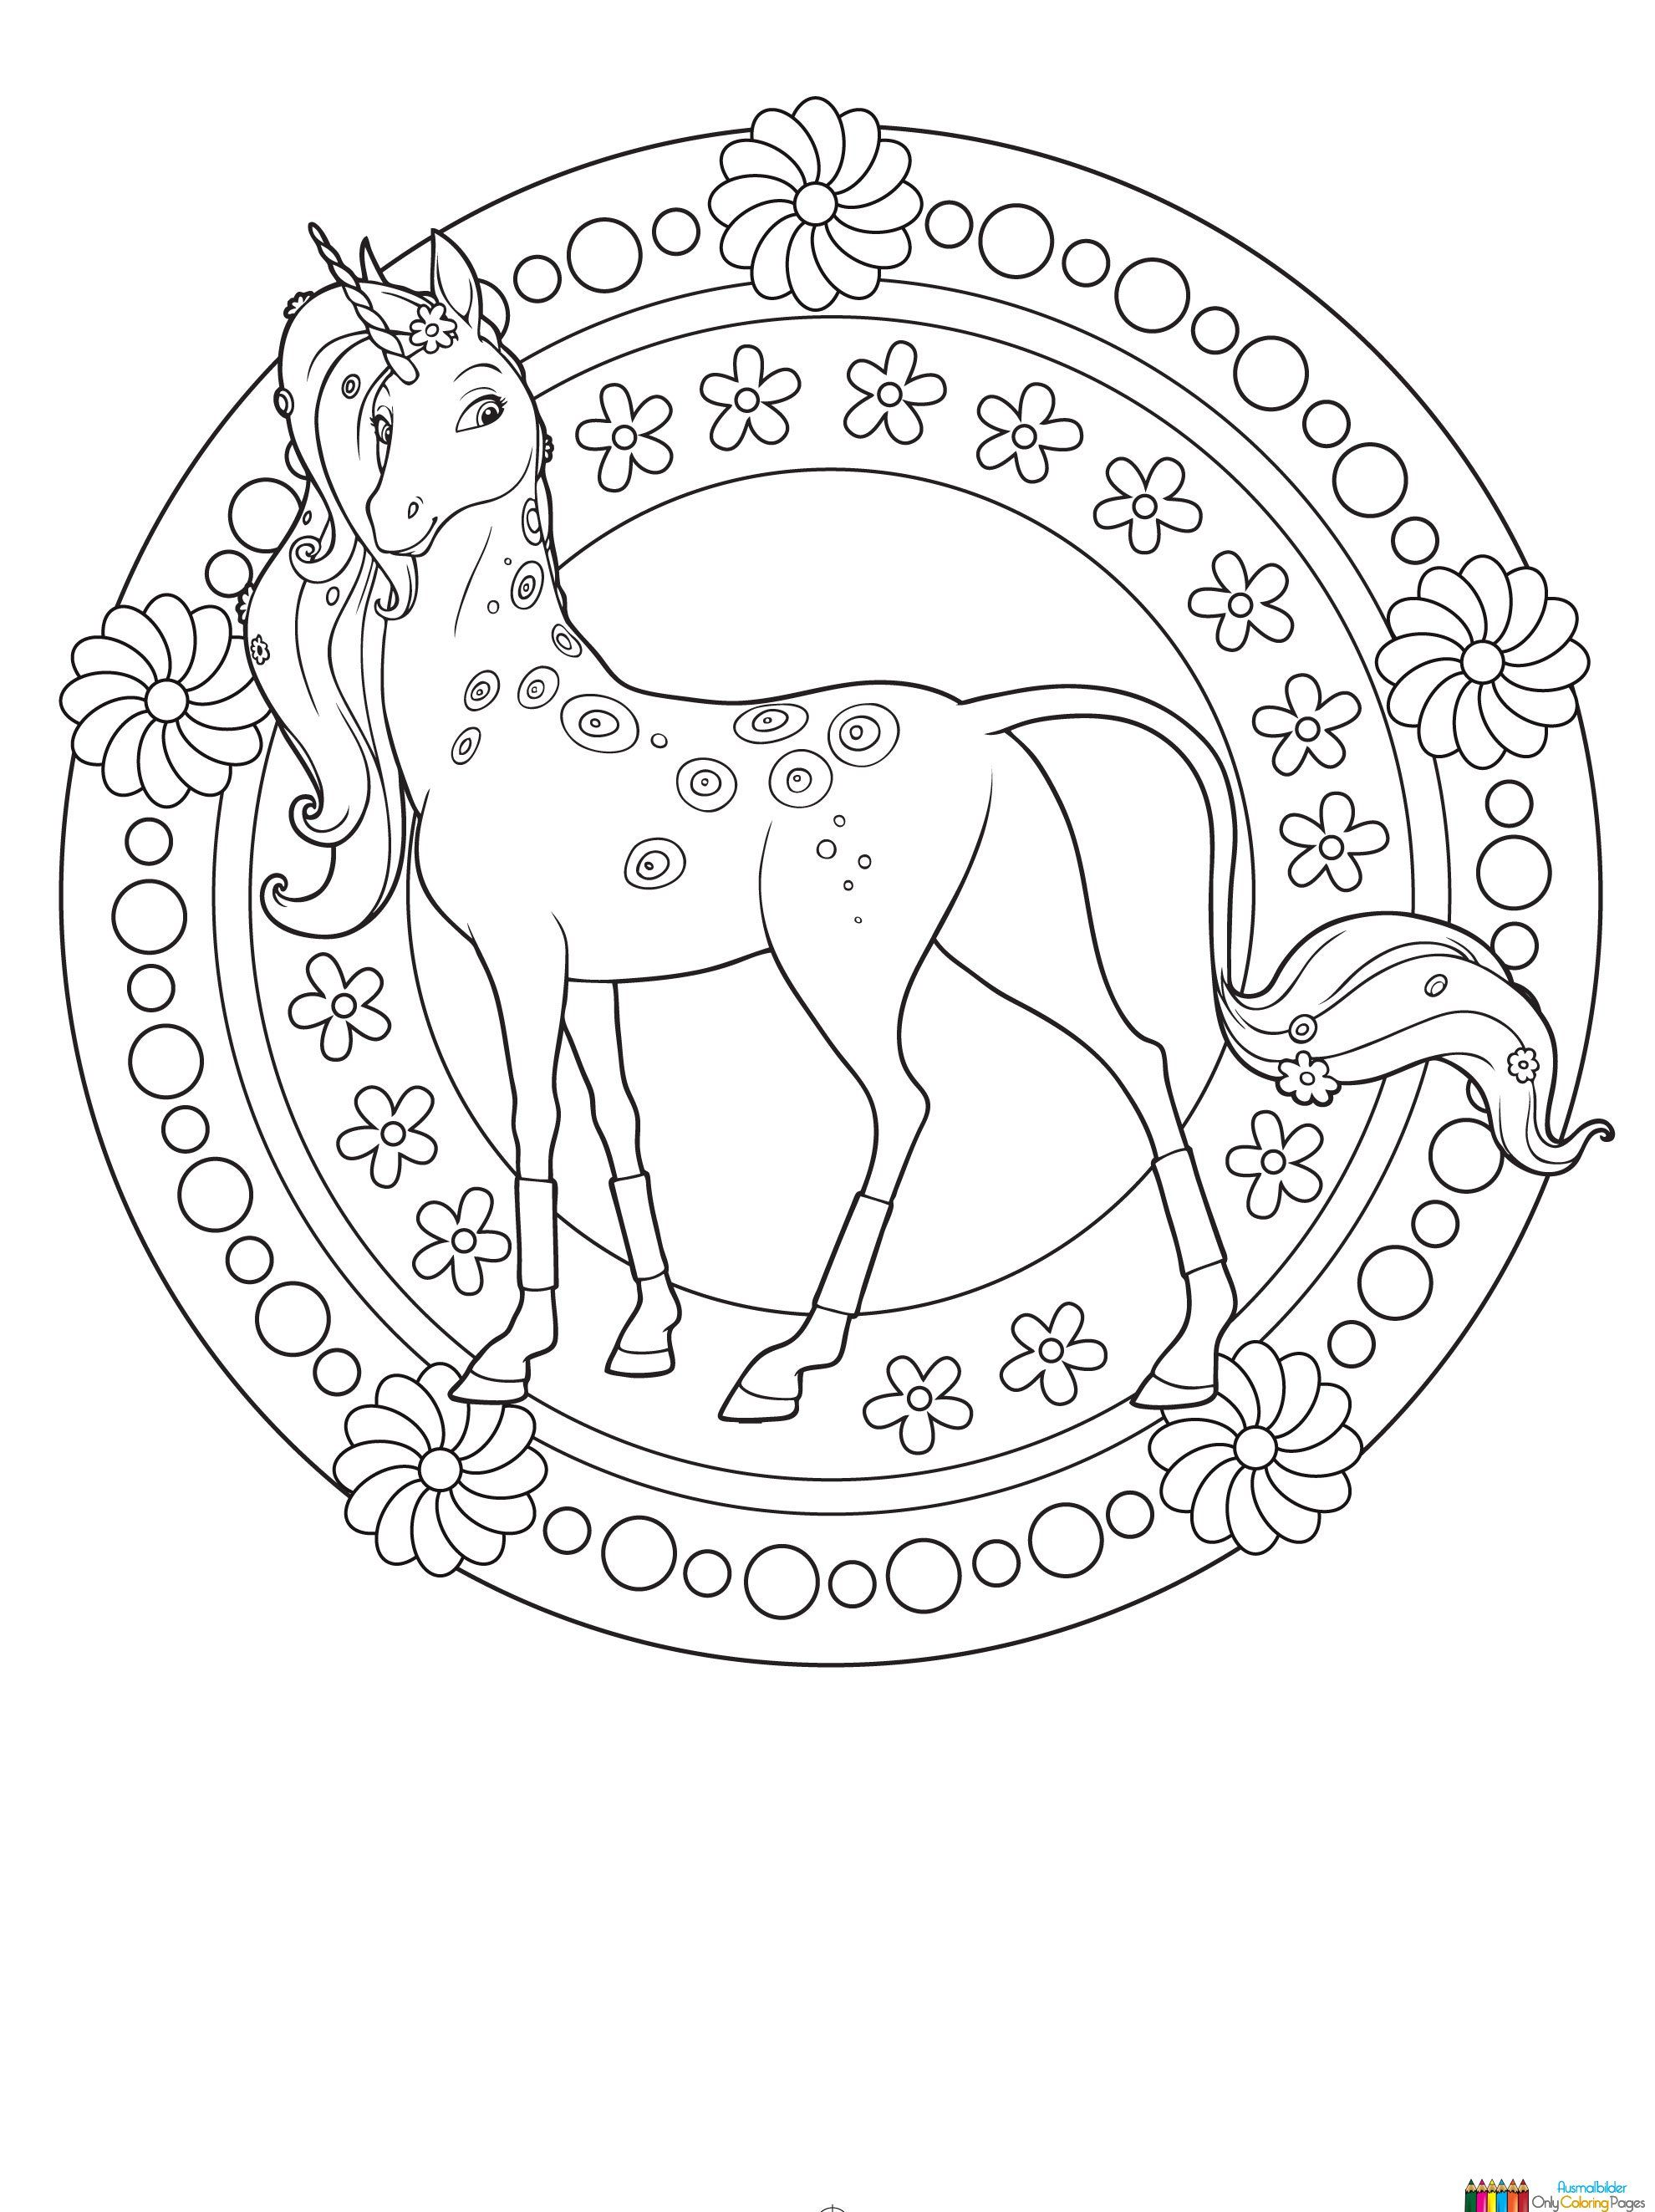 Onchao Unicorn Coloring Pages